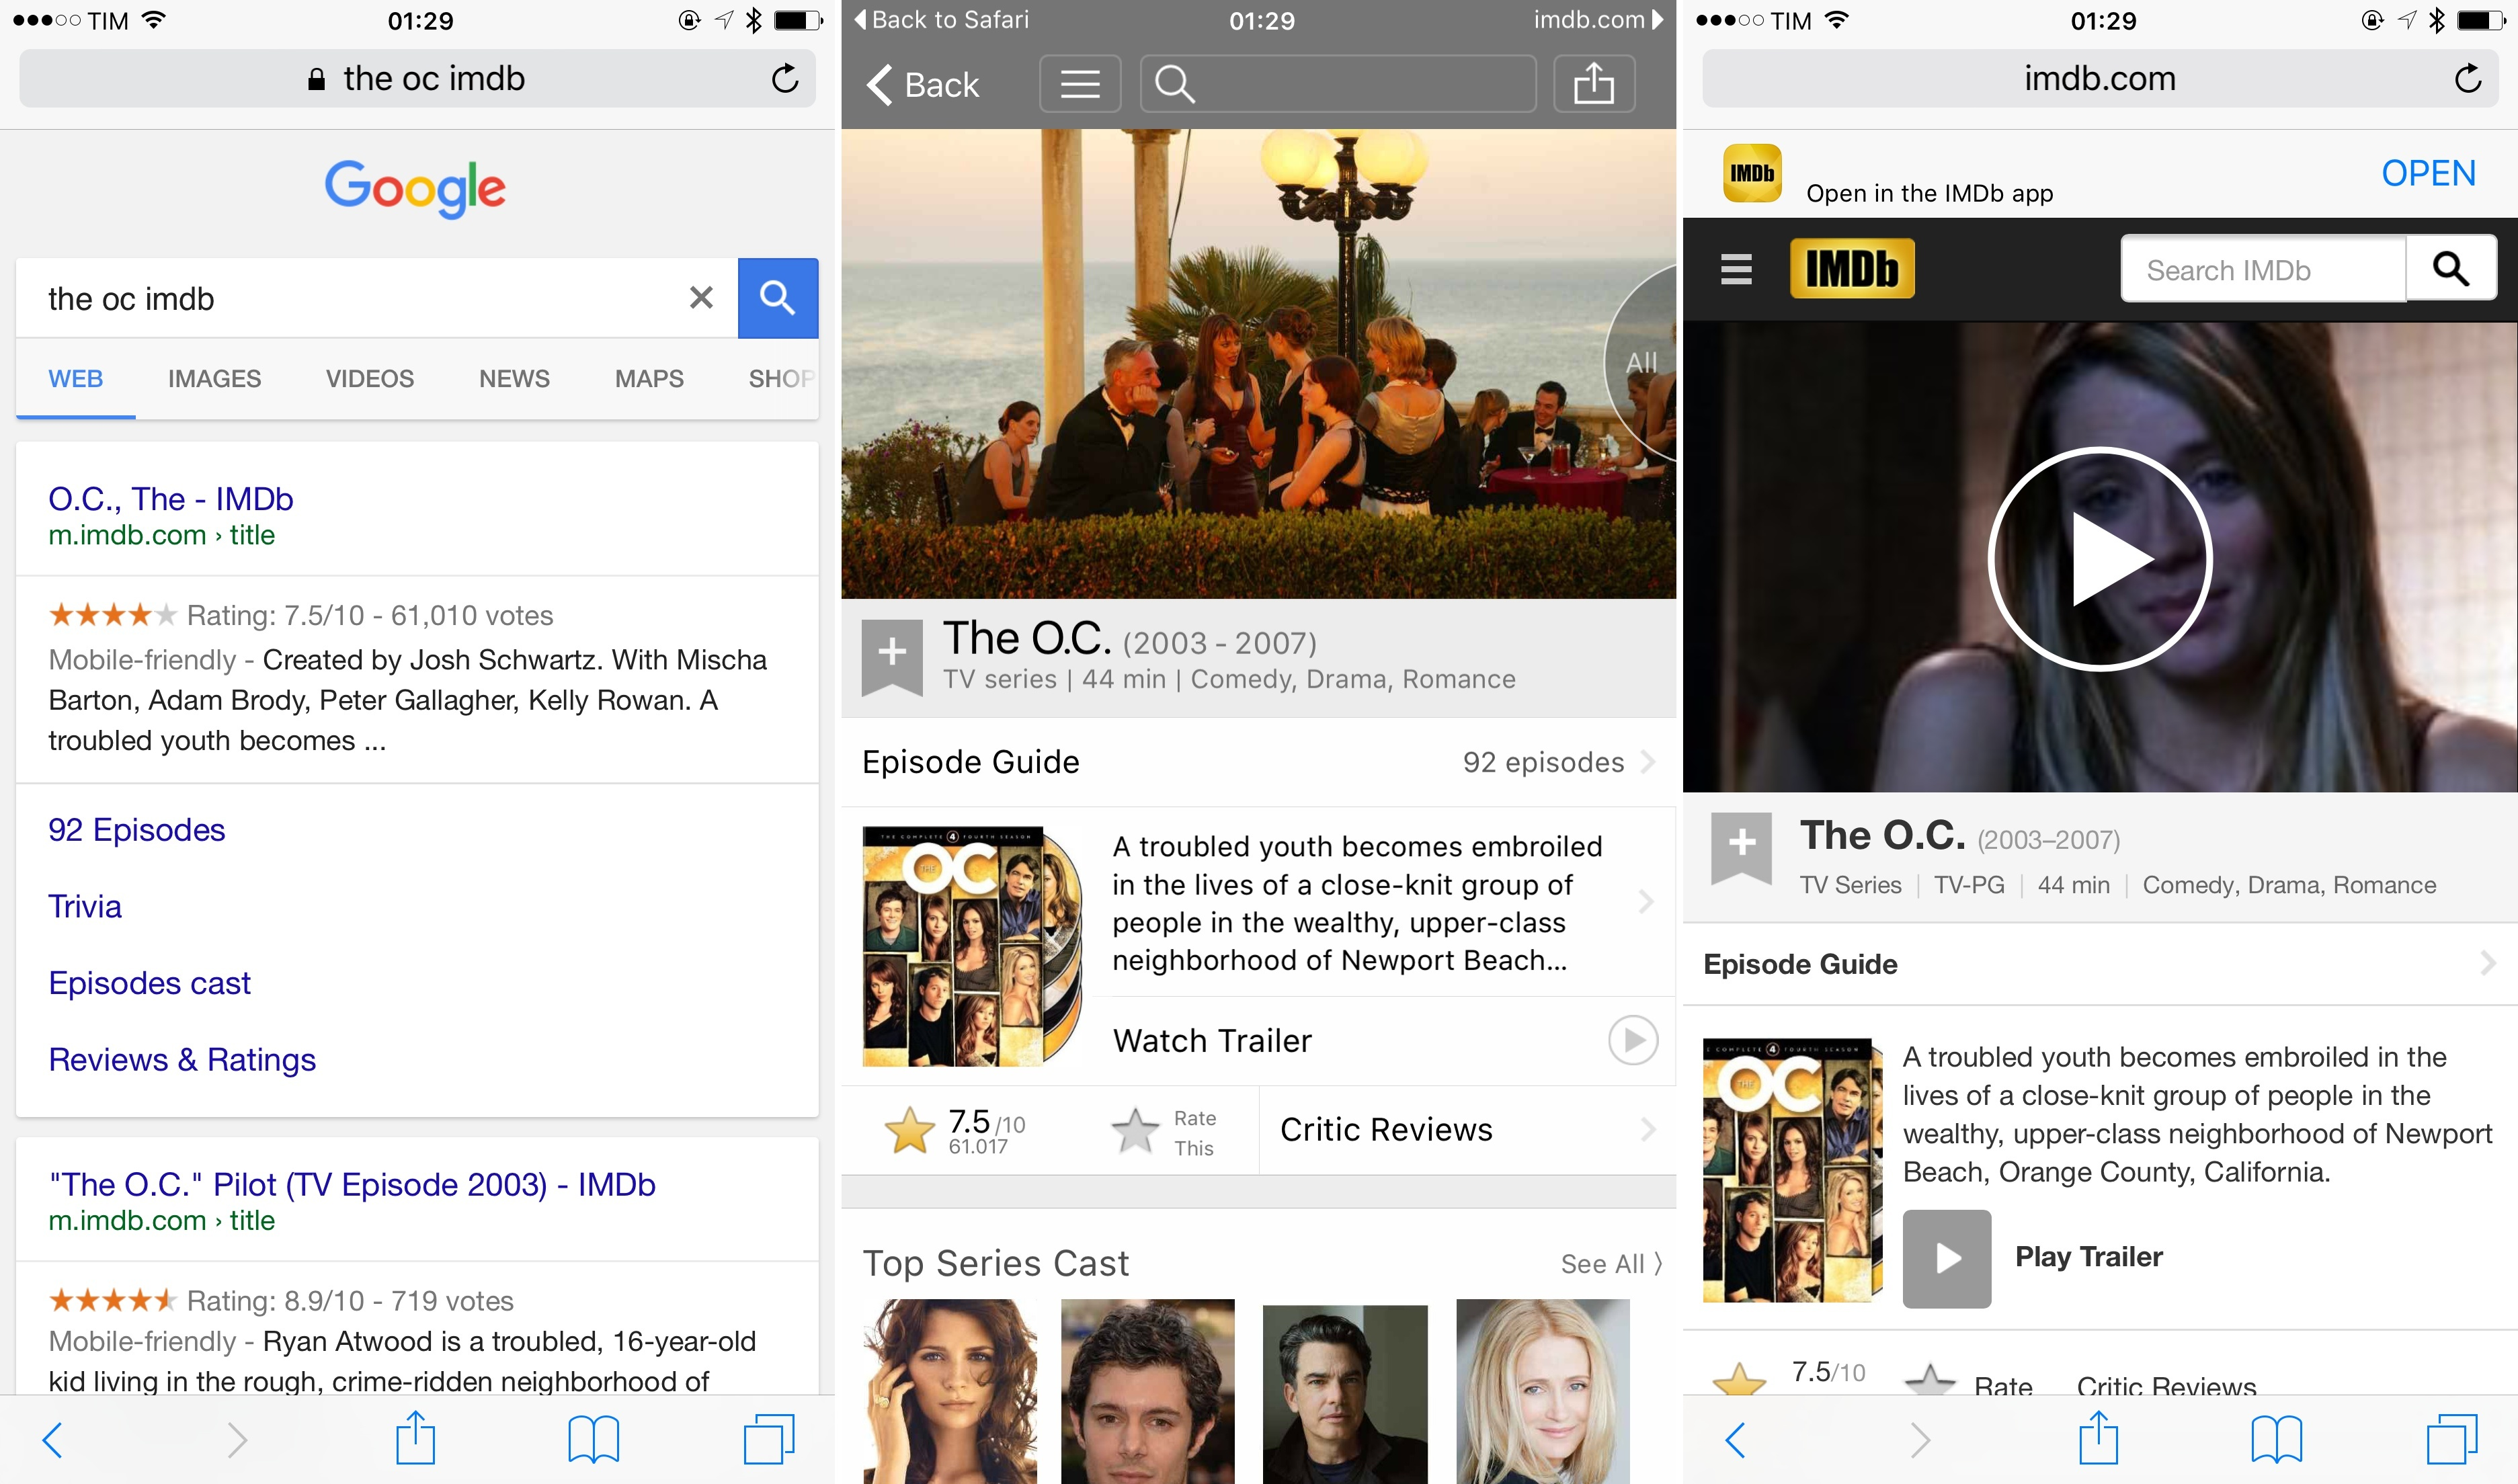 The flow of a Universal Link from Google to IMDb's app and webpage.